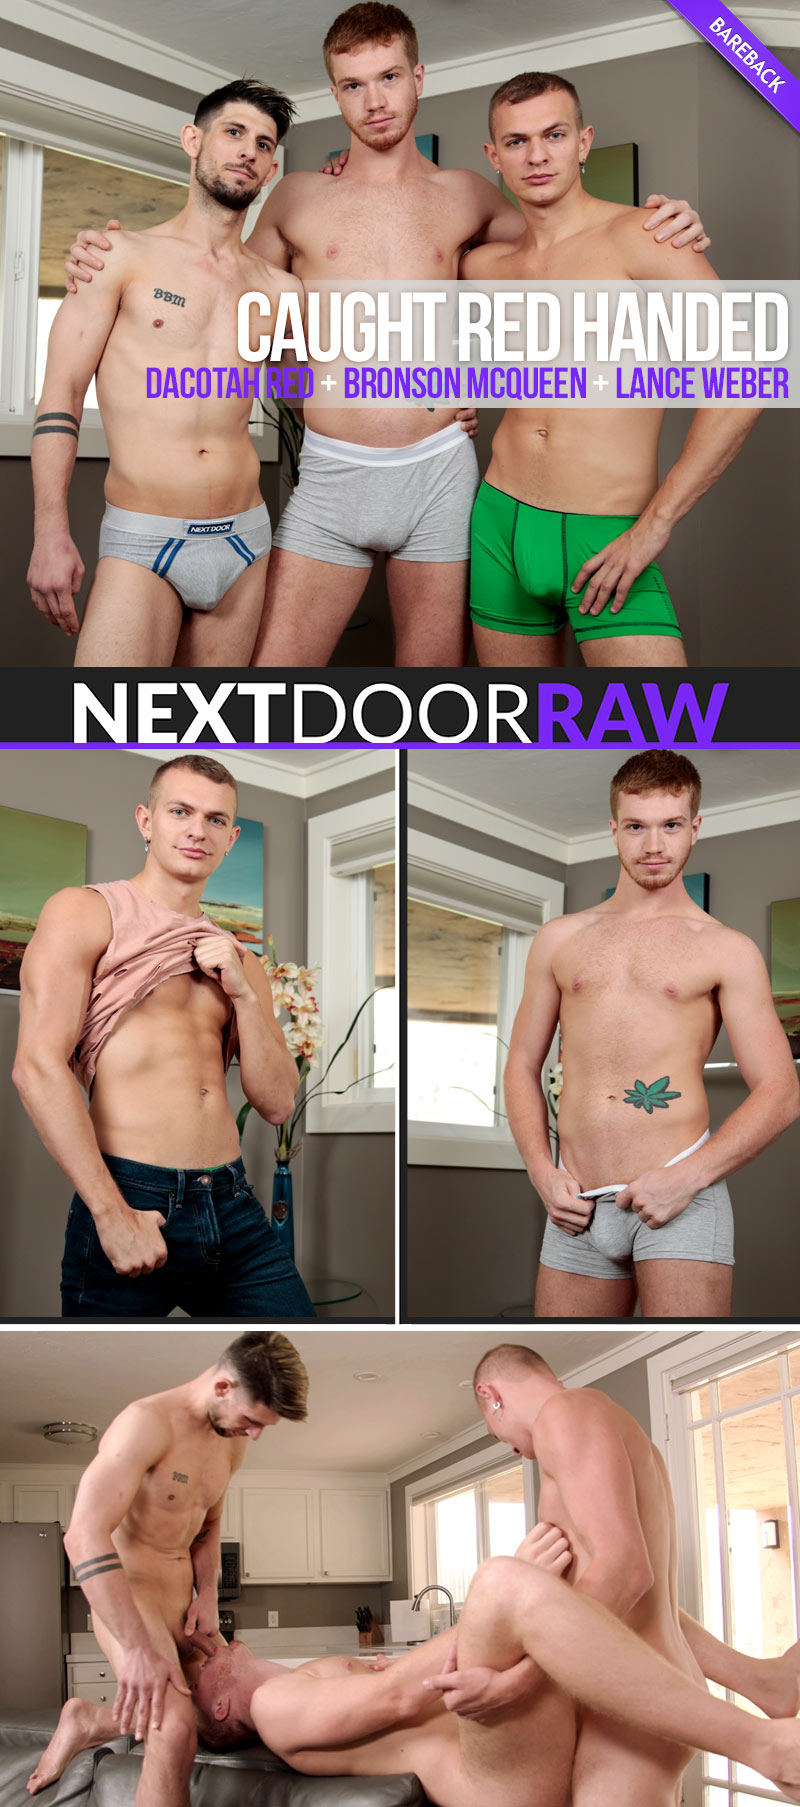 Caught Red Handed (Dacotah Red, Bronson McQueen and Lance Weber) at NextDoorRAW!